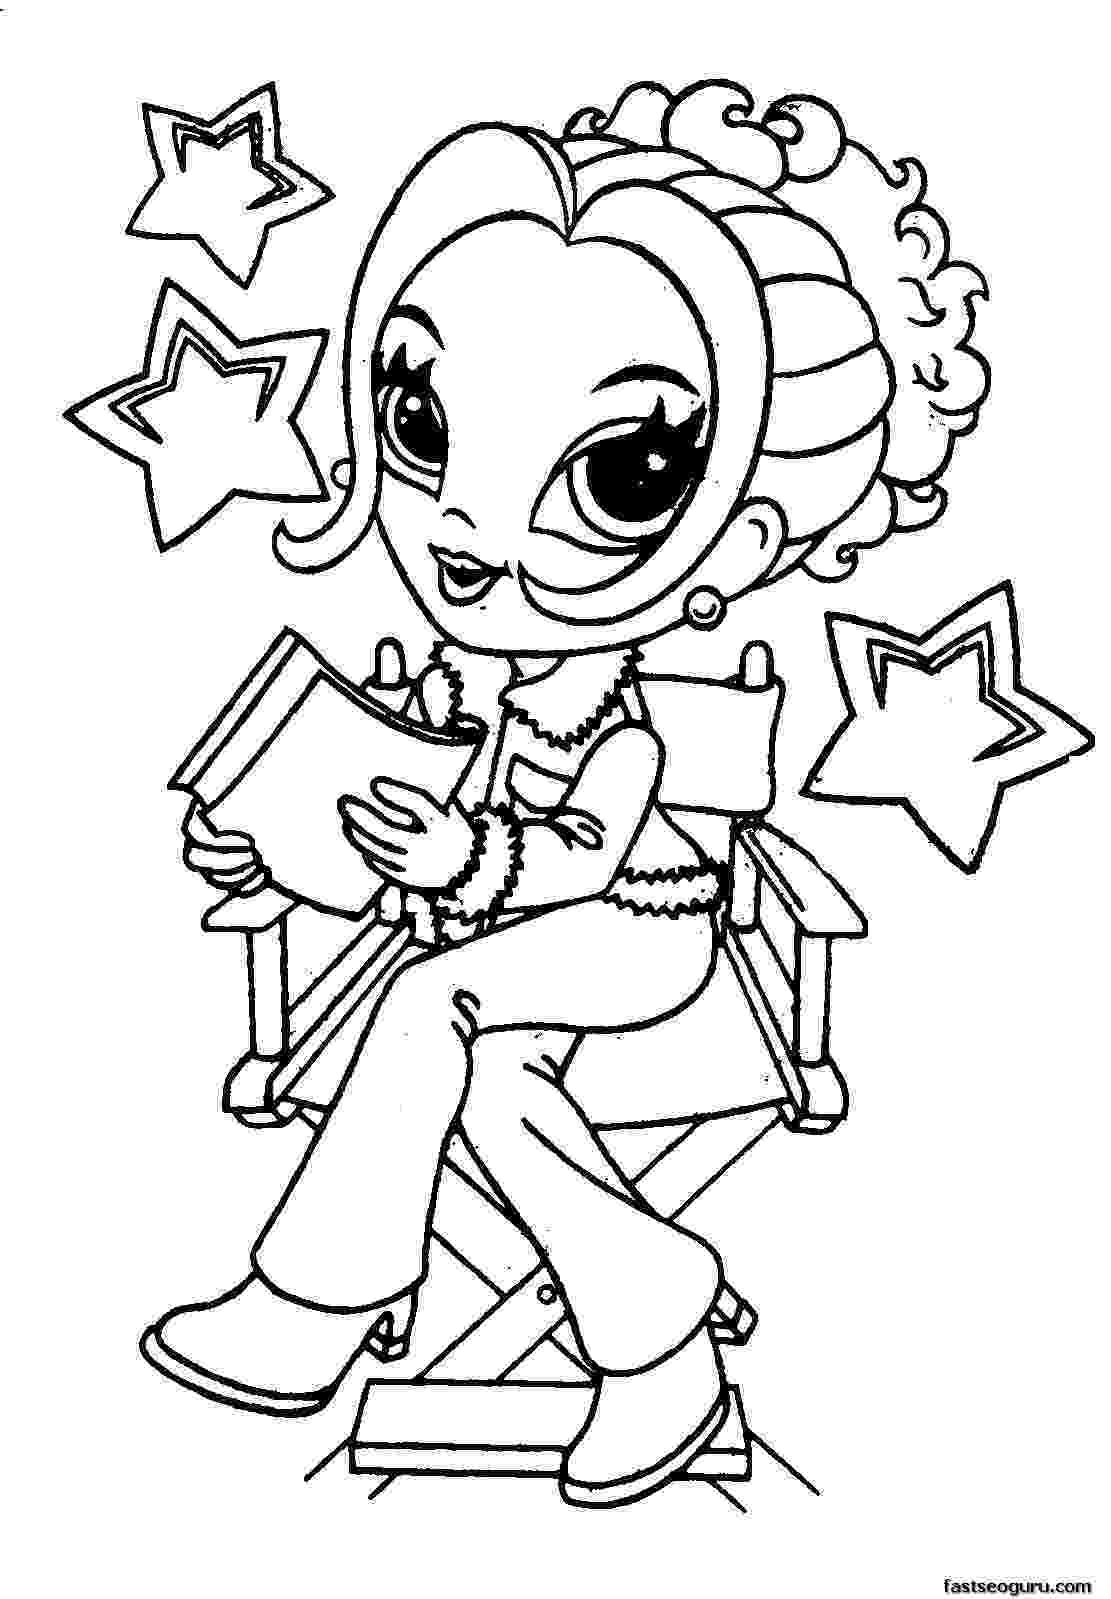 girl colering pages cute girl coloring pages to download and print for free pages girl colering